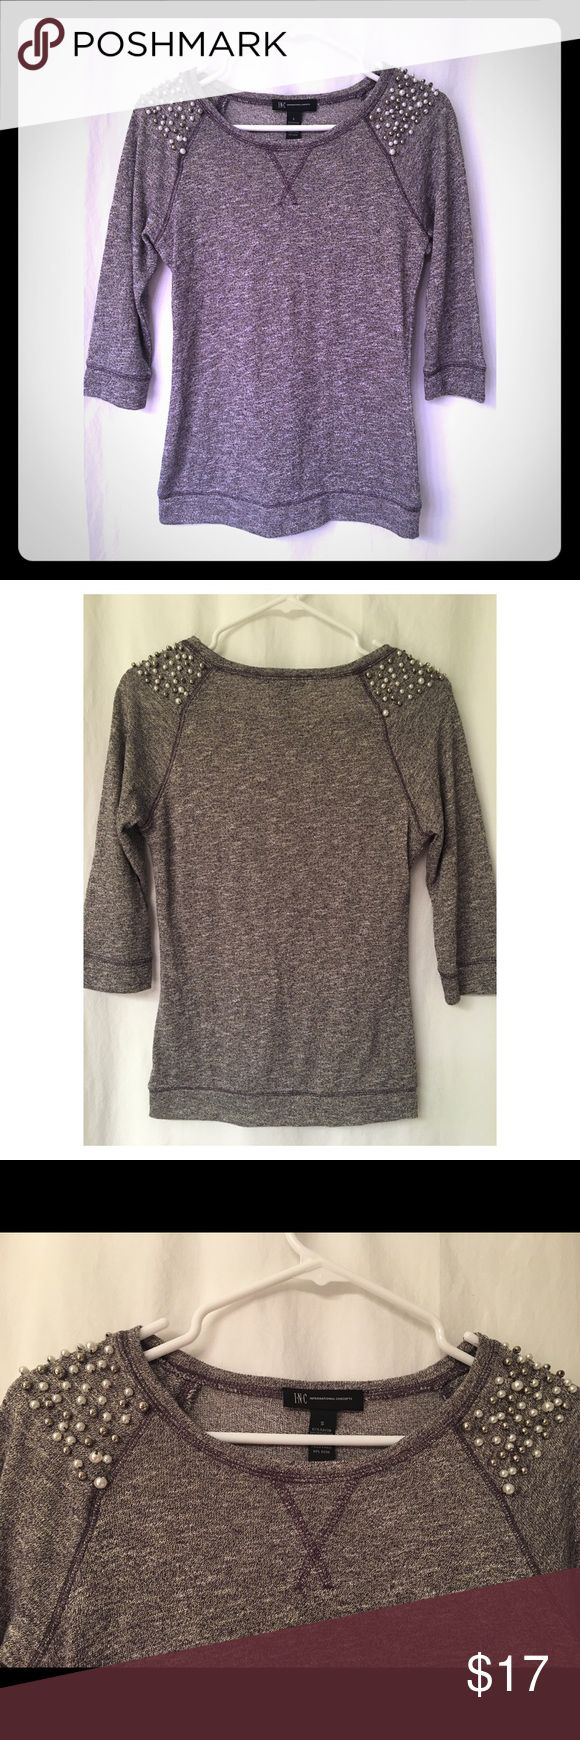 Macys INC sweater with beaded shoulders! Beautiful grey/metallic INC sweater. In excellent condition! Worn once! Beautiful beading and detail on shoulders. Size S. INC International Concepts Sweaters Crew & Scoop Necks